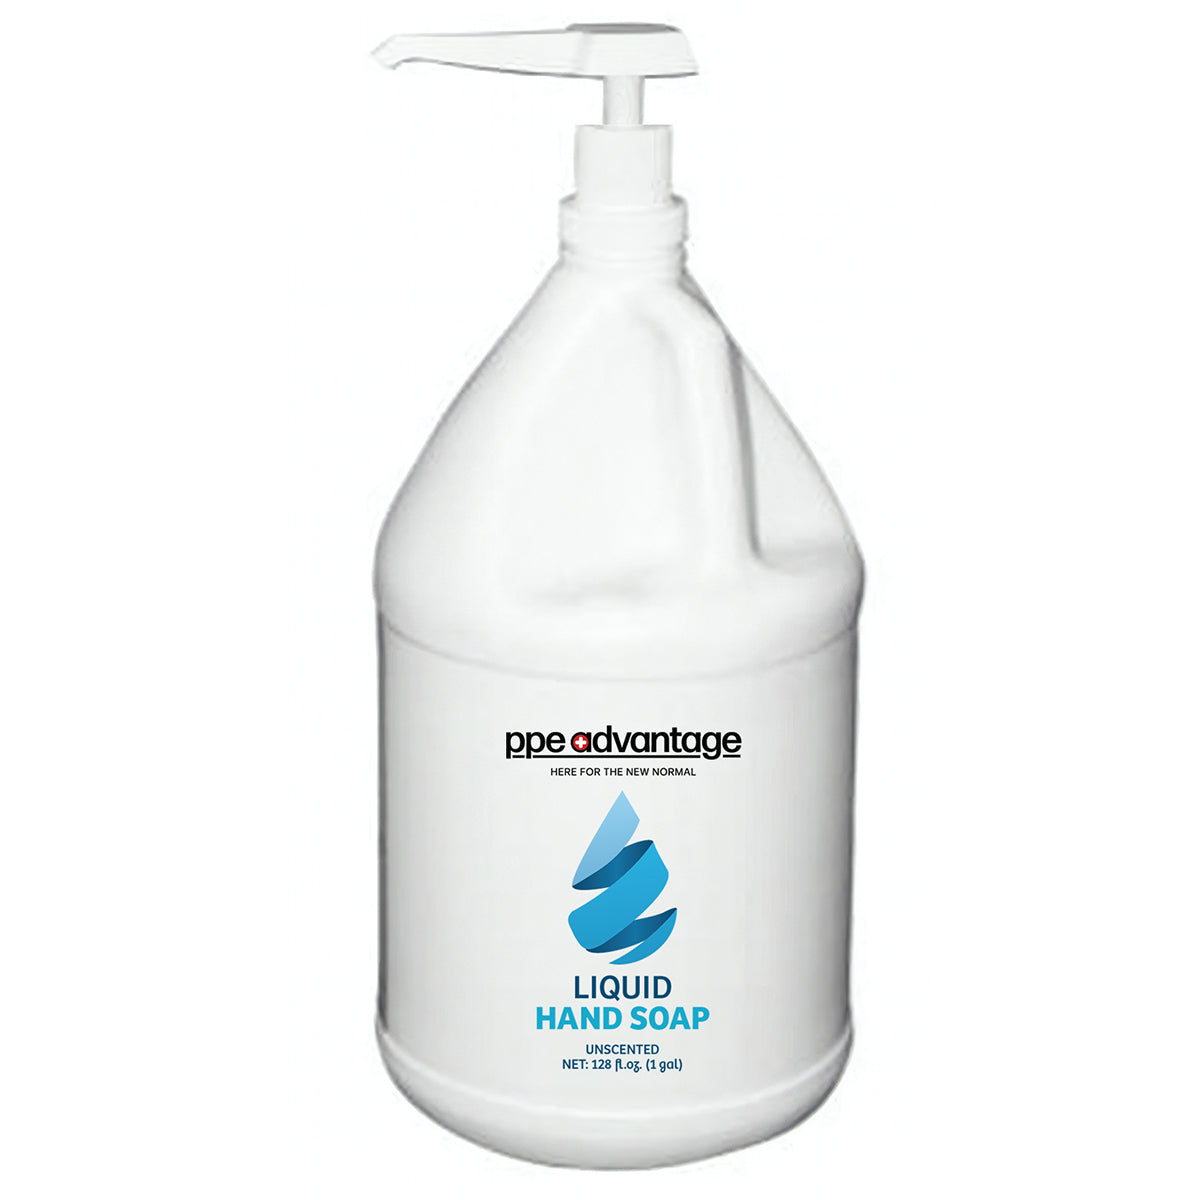 4068 Custom Logo Liquid Hand Soap (1gal) - Blue Droplet | PPE Advantate powered by dS Product Hunters